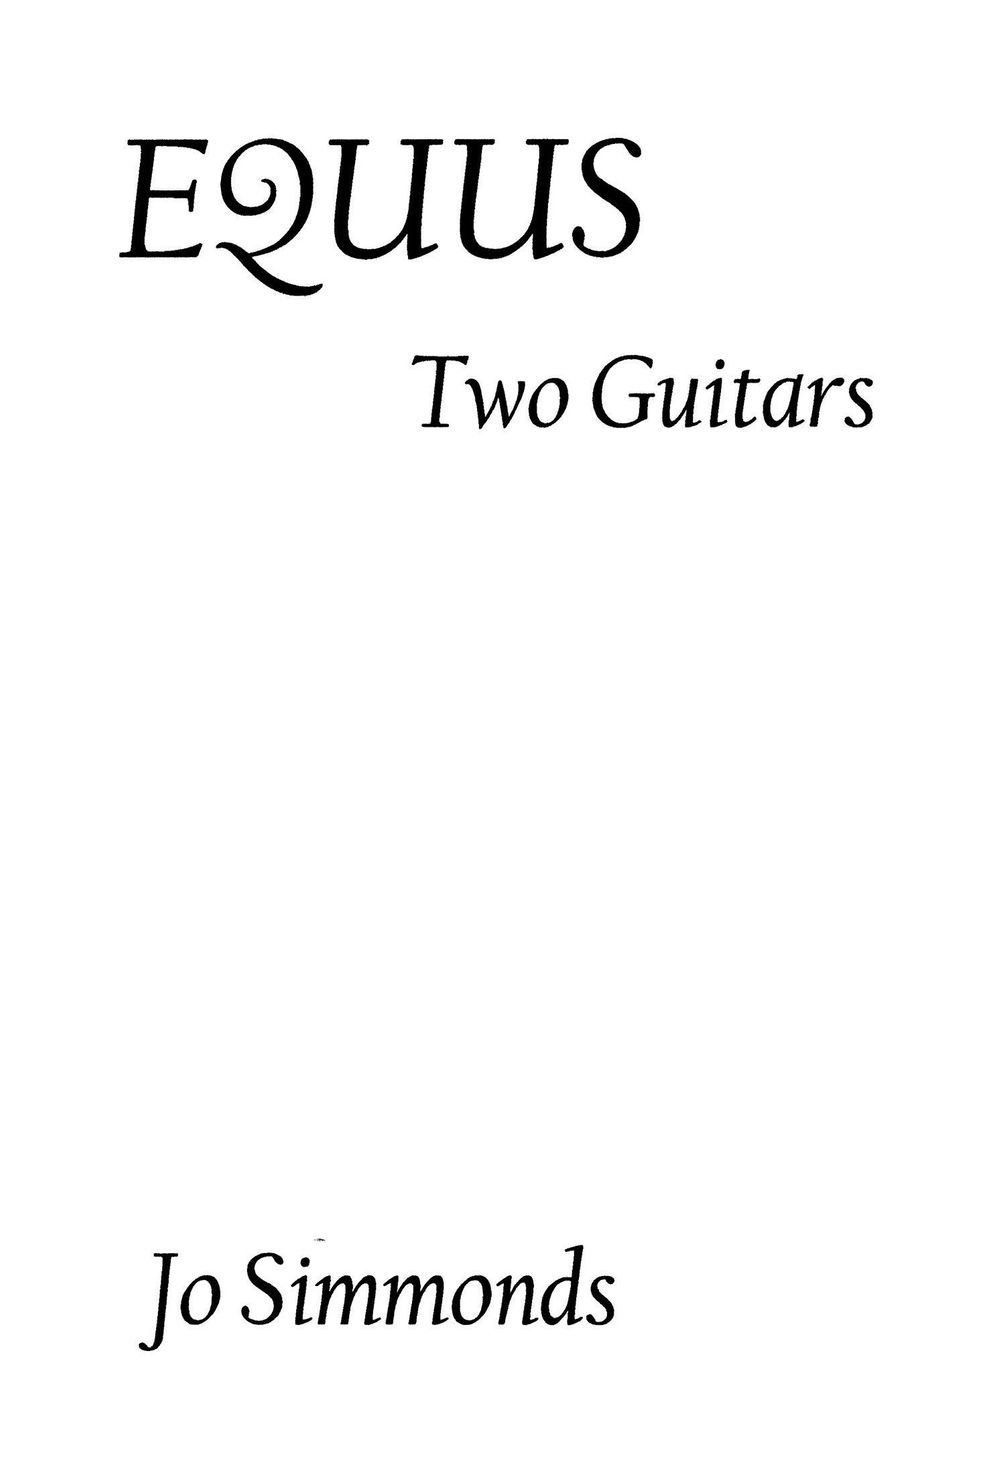 Guitar sheet music,  Equus - Jo Simmonds, Equus Libero, guitar duet